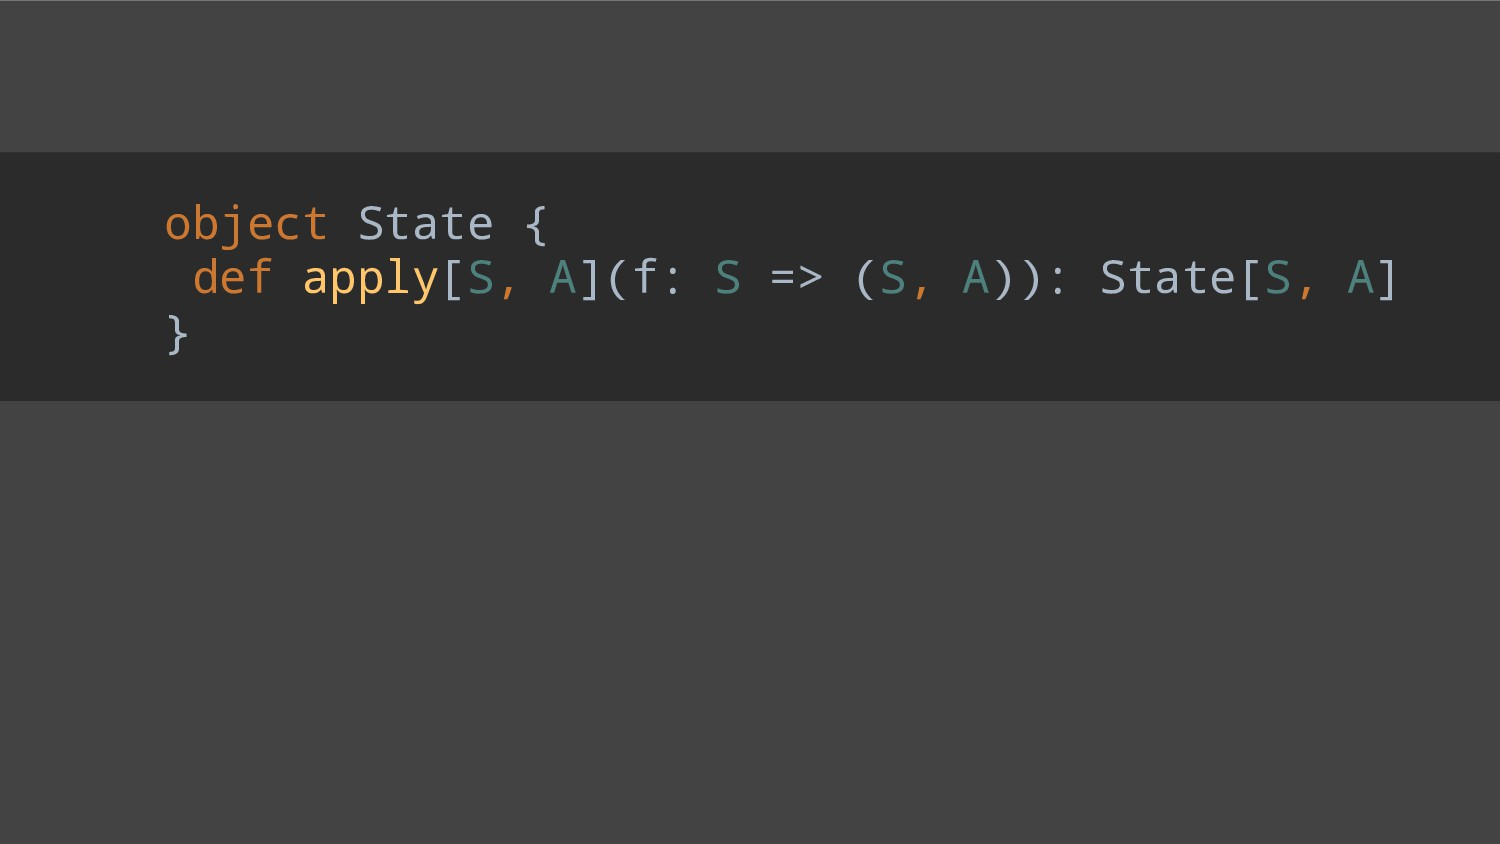 object State { def apply[S, A](f: S => (S, A)):...